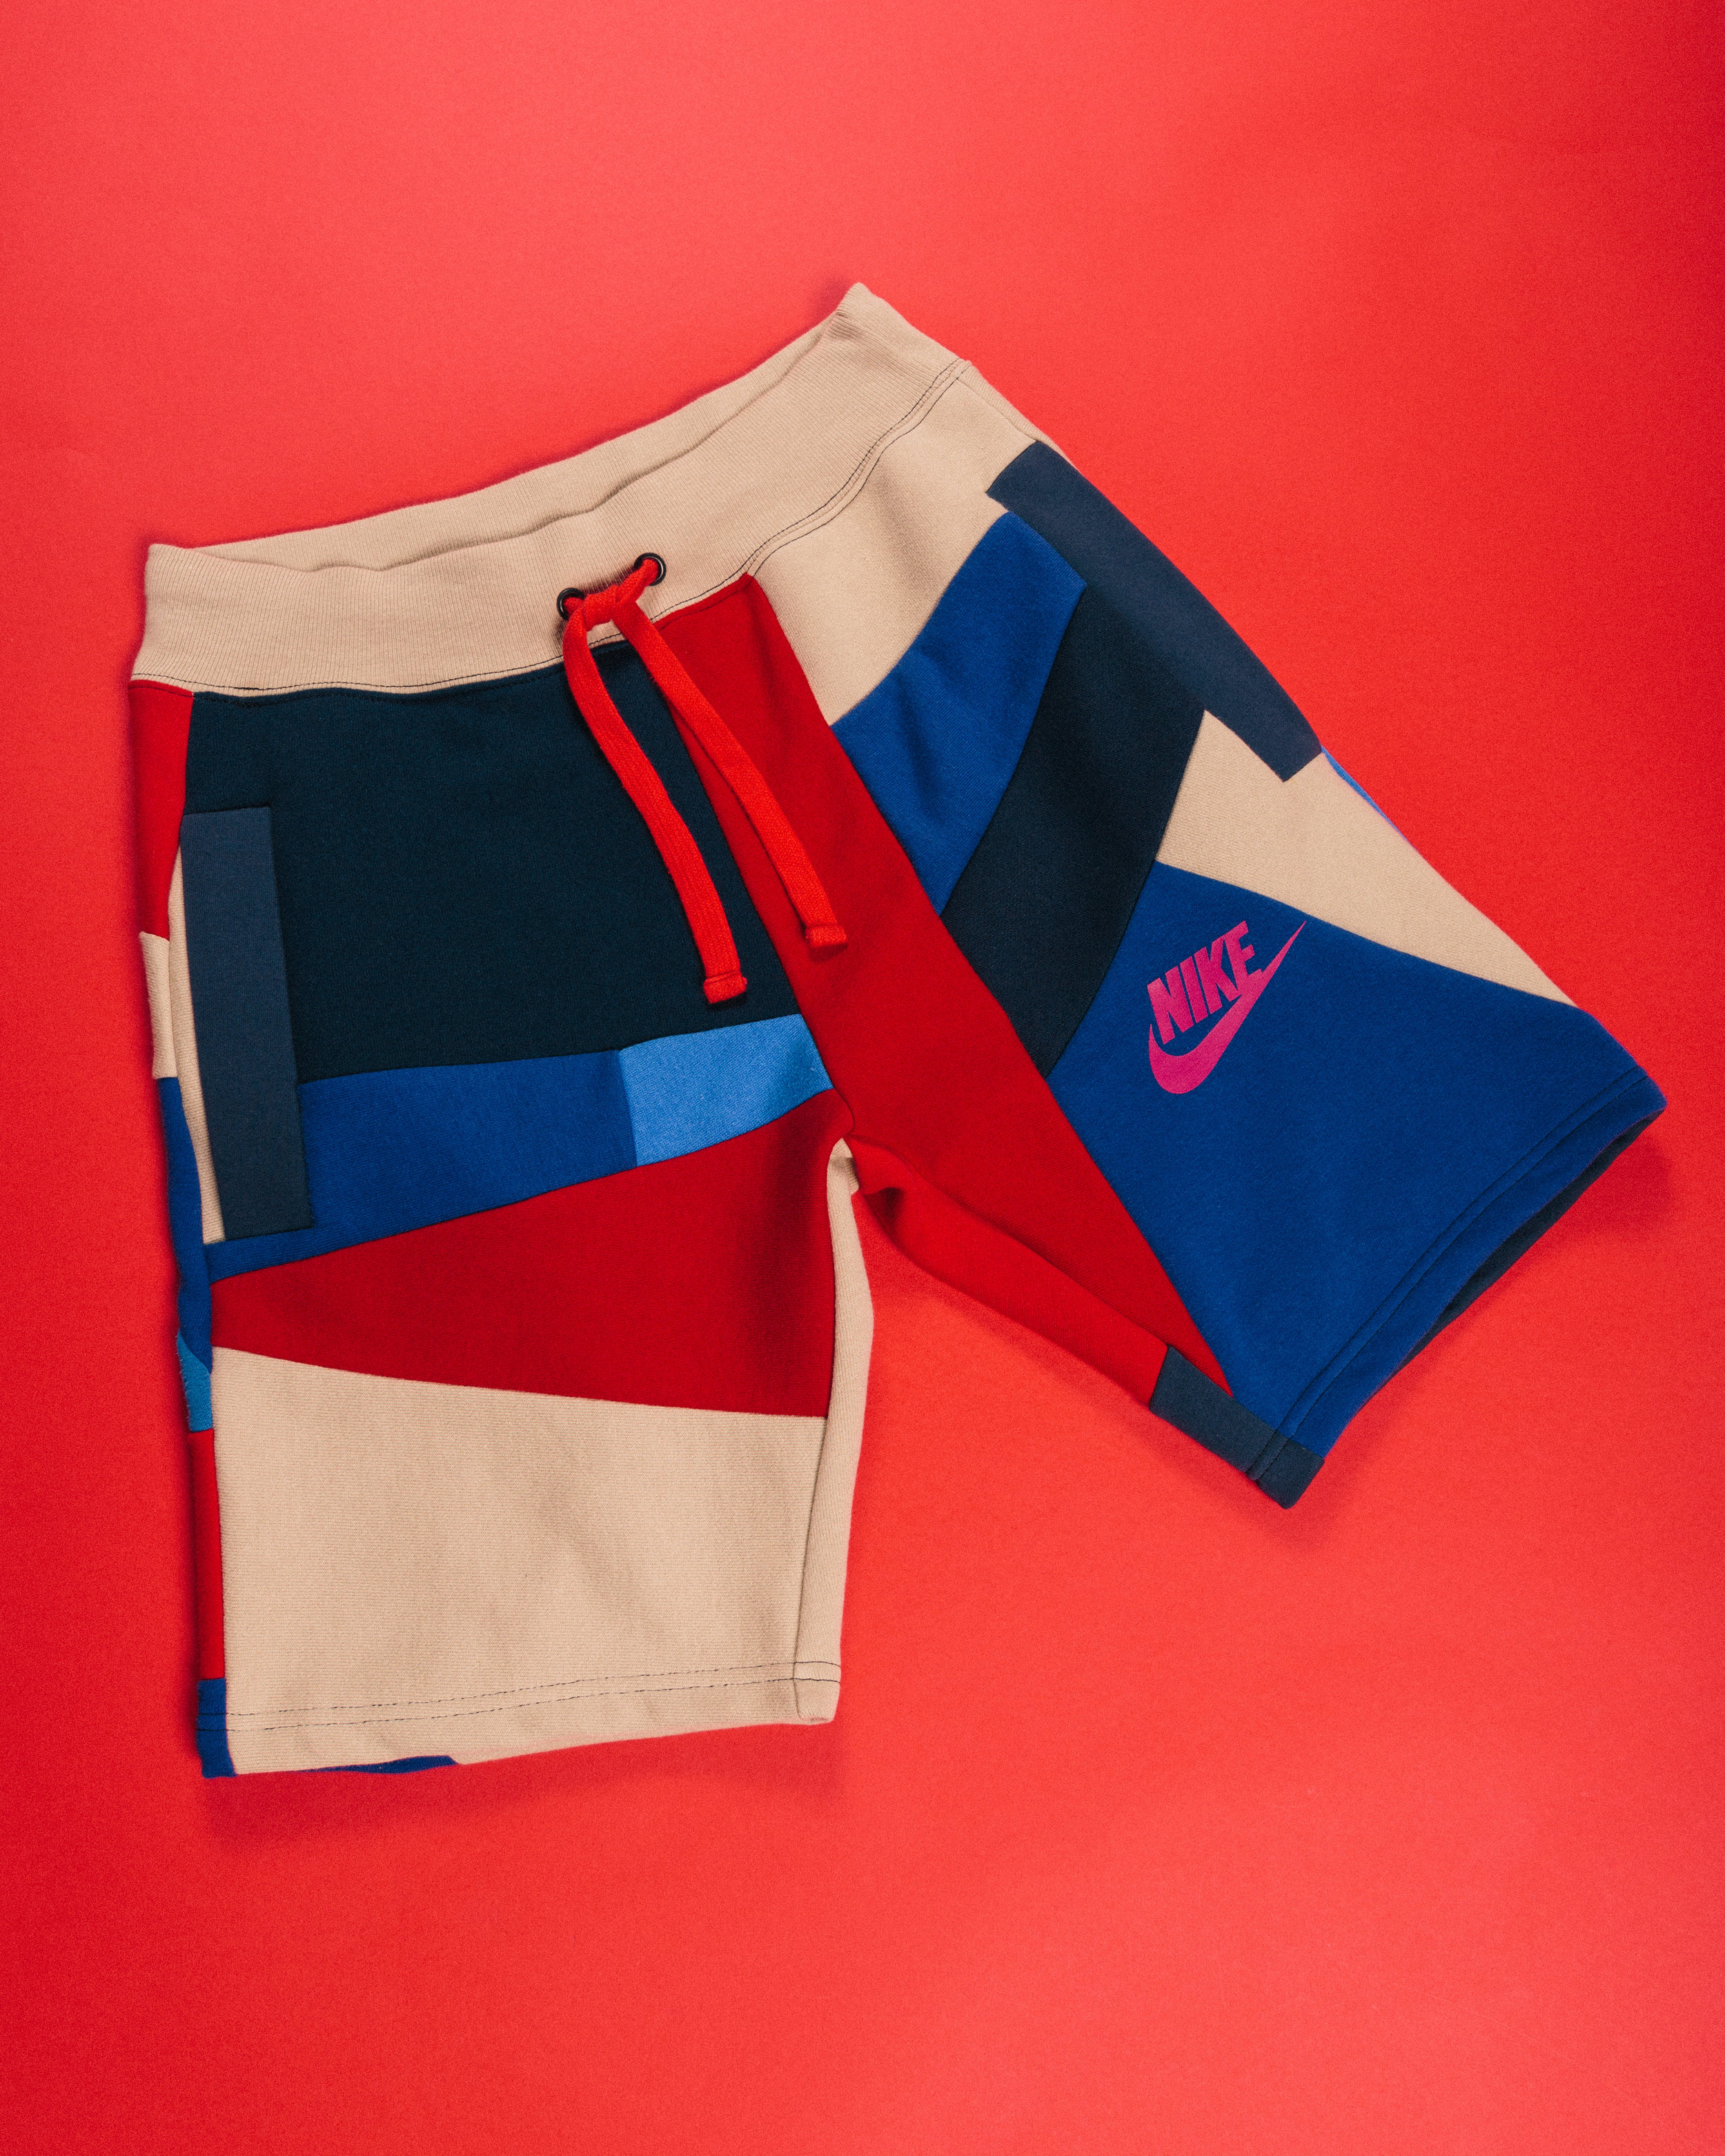 Nike Mosaic Shorts - 1 of 1 made reusing the chest logo of a nike sweatshirt as well as some champion reverse weave fleece and more.